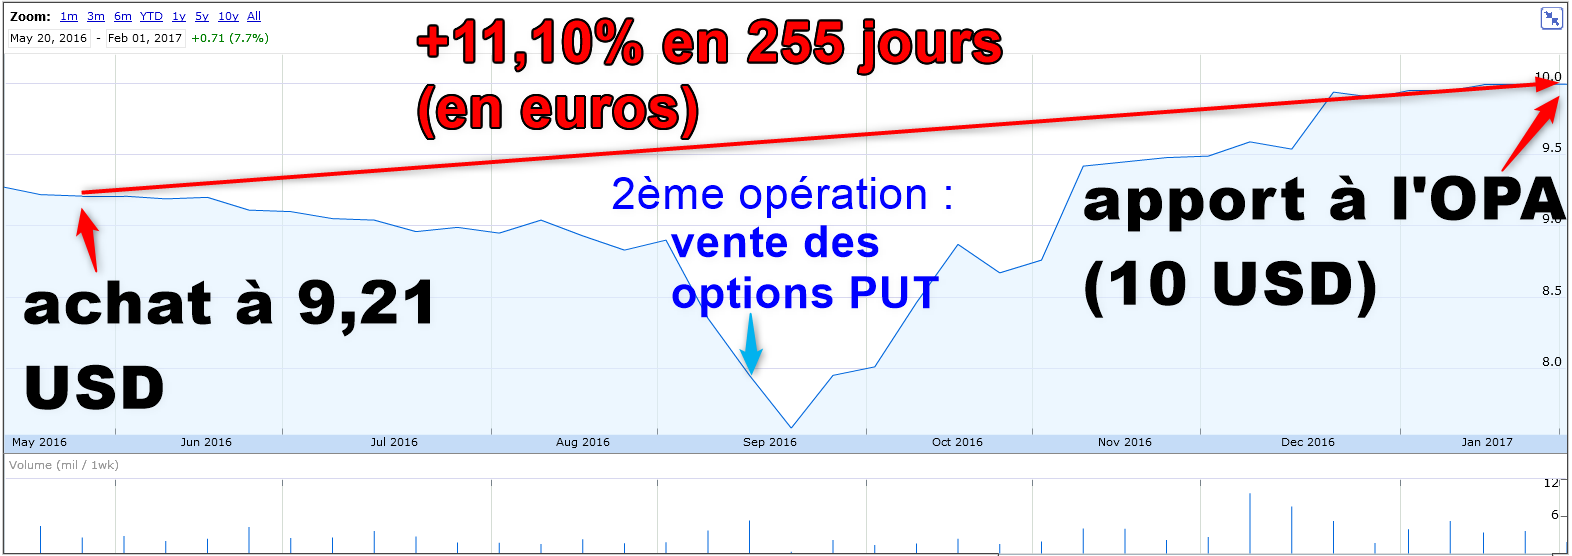 Bas les masques – Apollo Education Group (RAPP) + ventes d'options